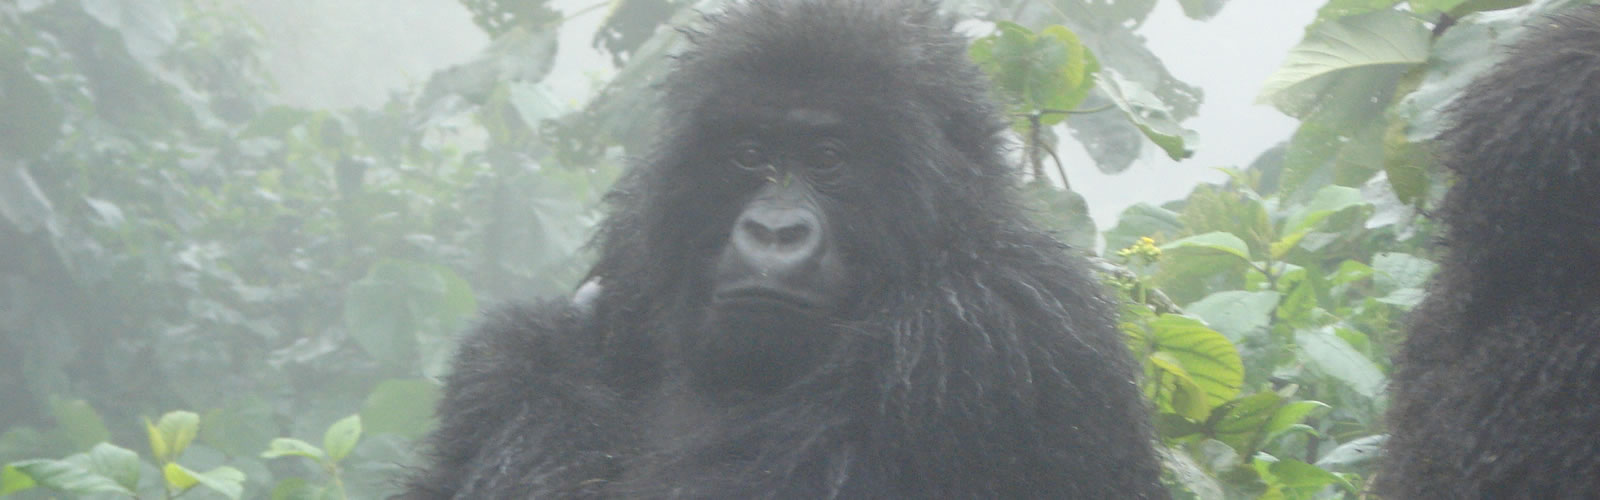 Gorillas in the Mist (4 Days in Rwanda)